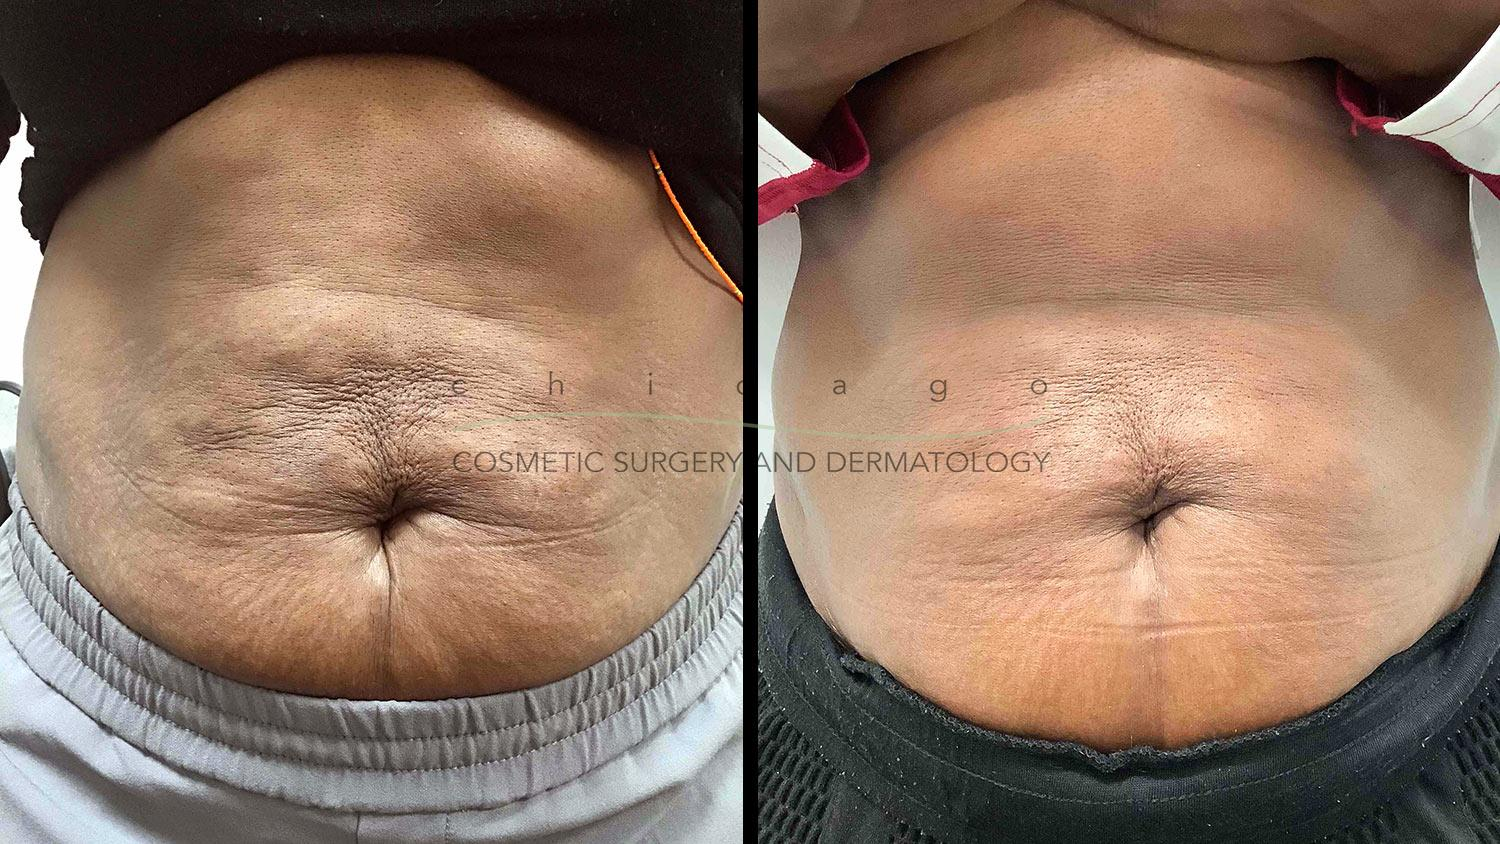 Sculptra for before and after for stomach